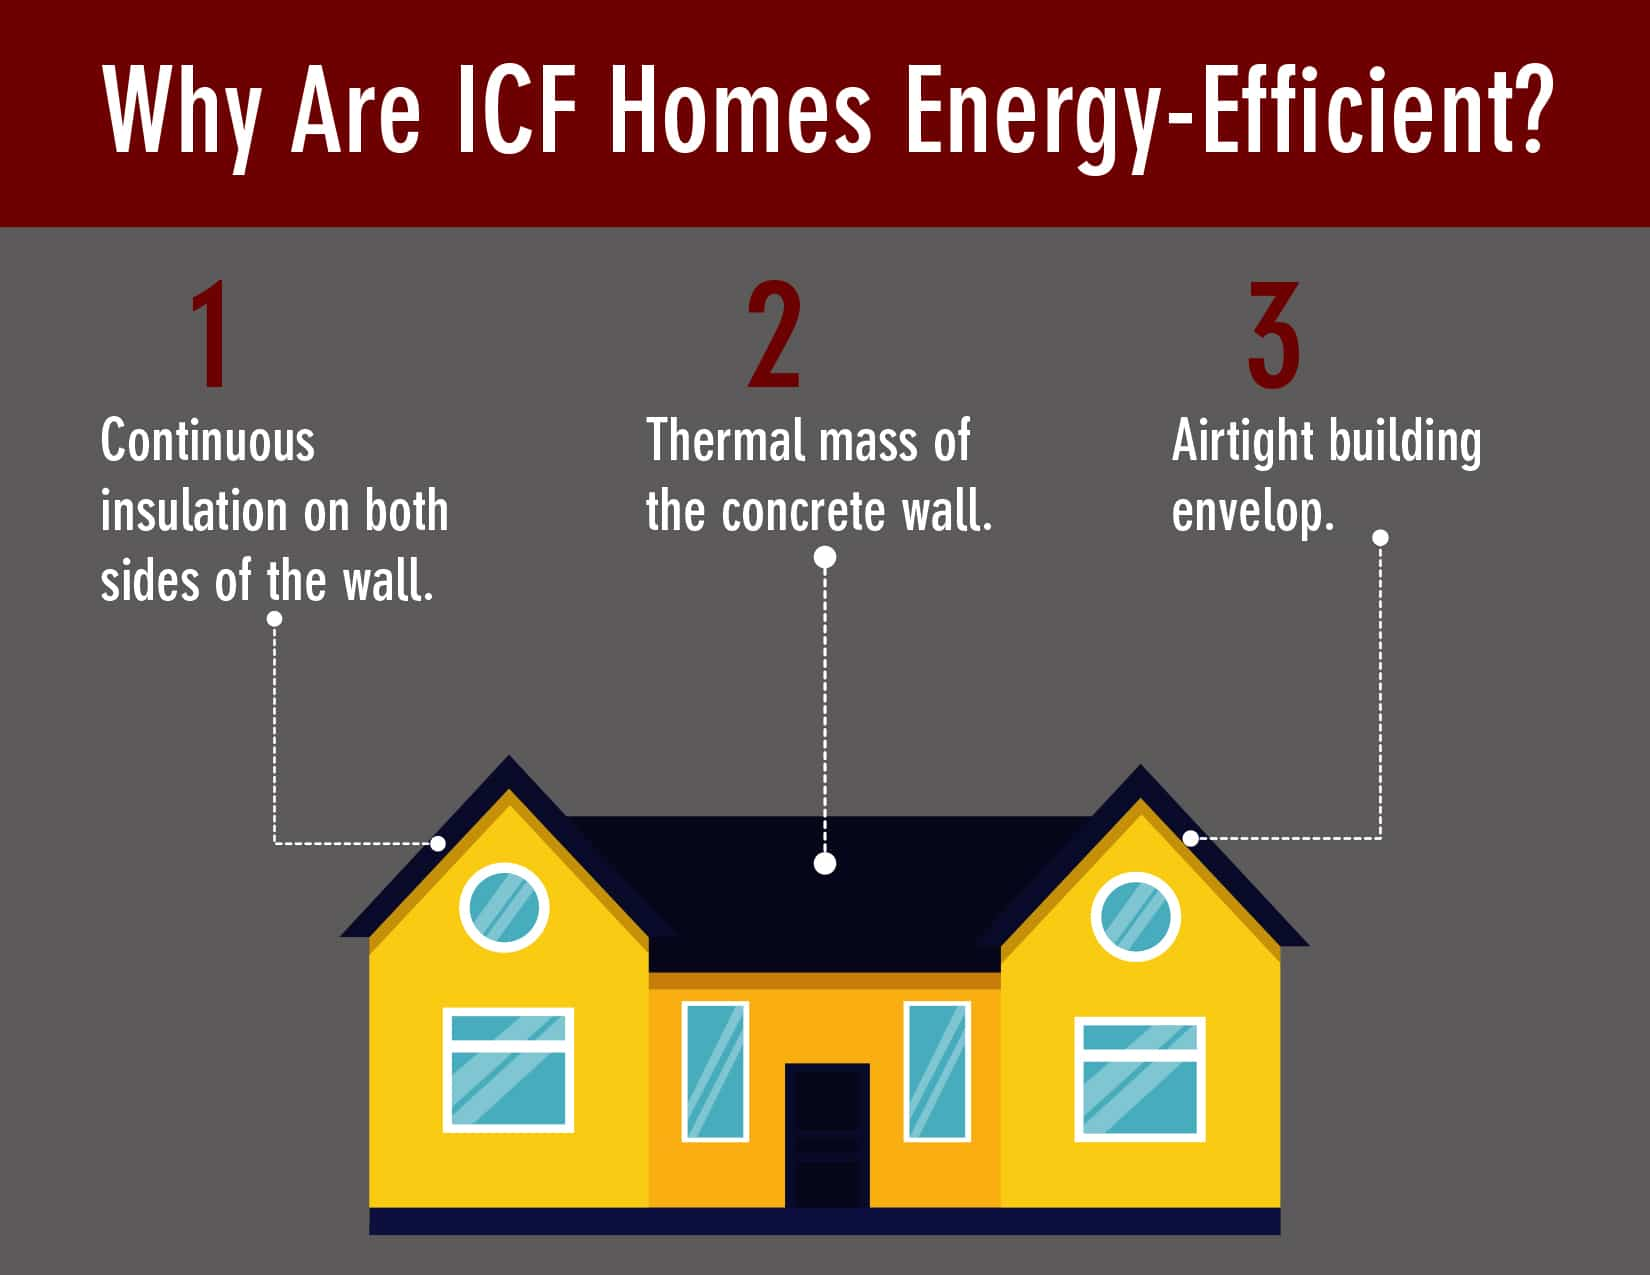 Why Are ICF Homes Energy-Efficient